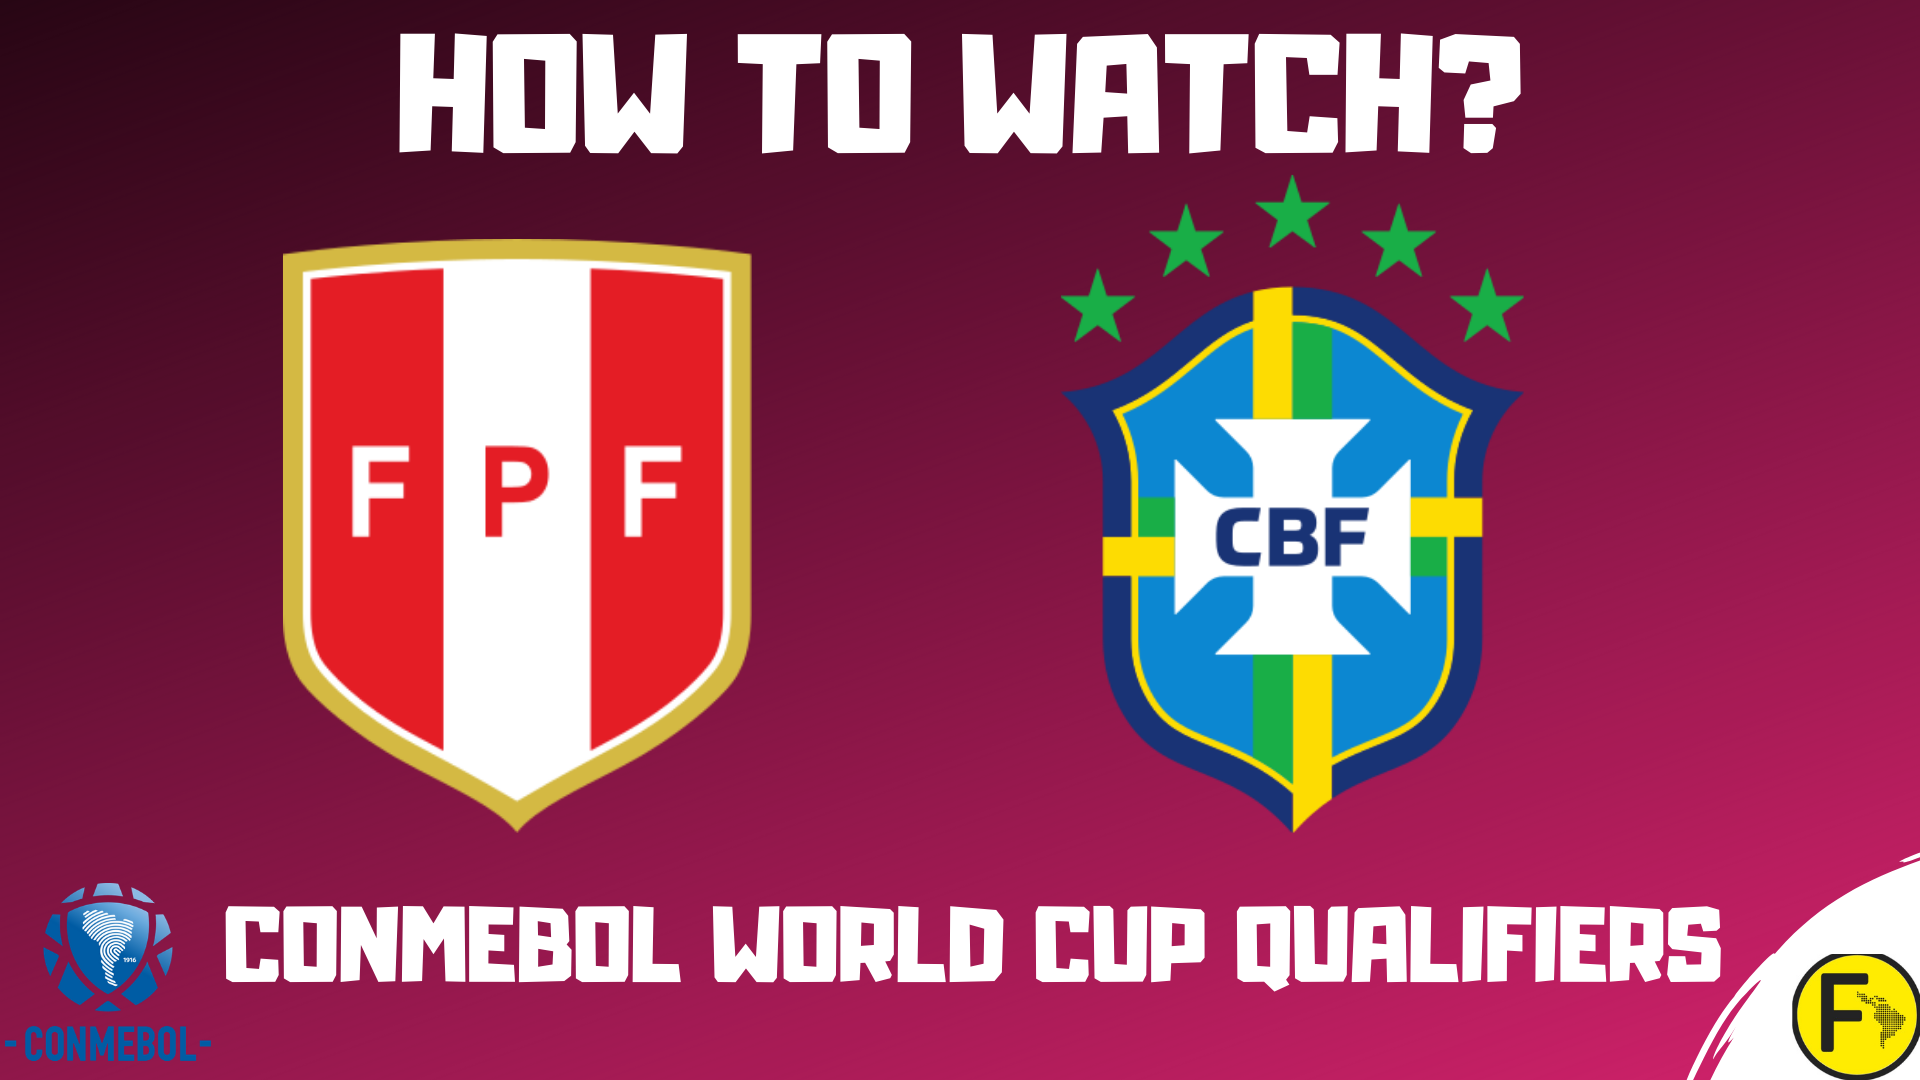 Peru Vs Brazil Live Stream 2020 How To Watch Online Tv Channel Prediction Futnsoccer